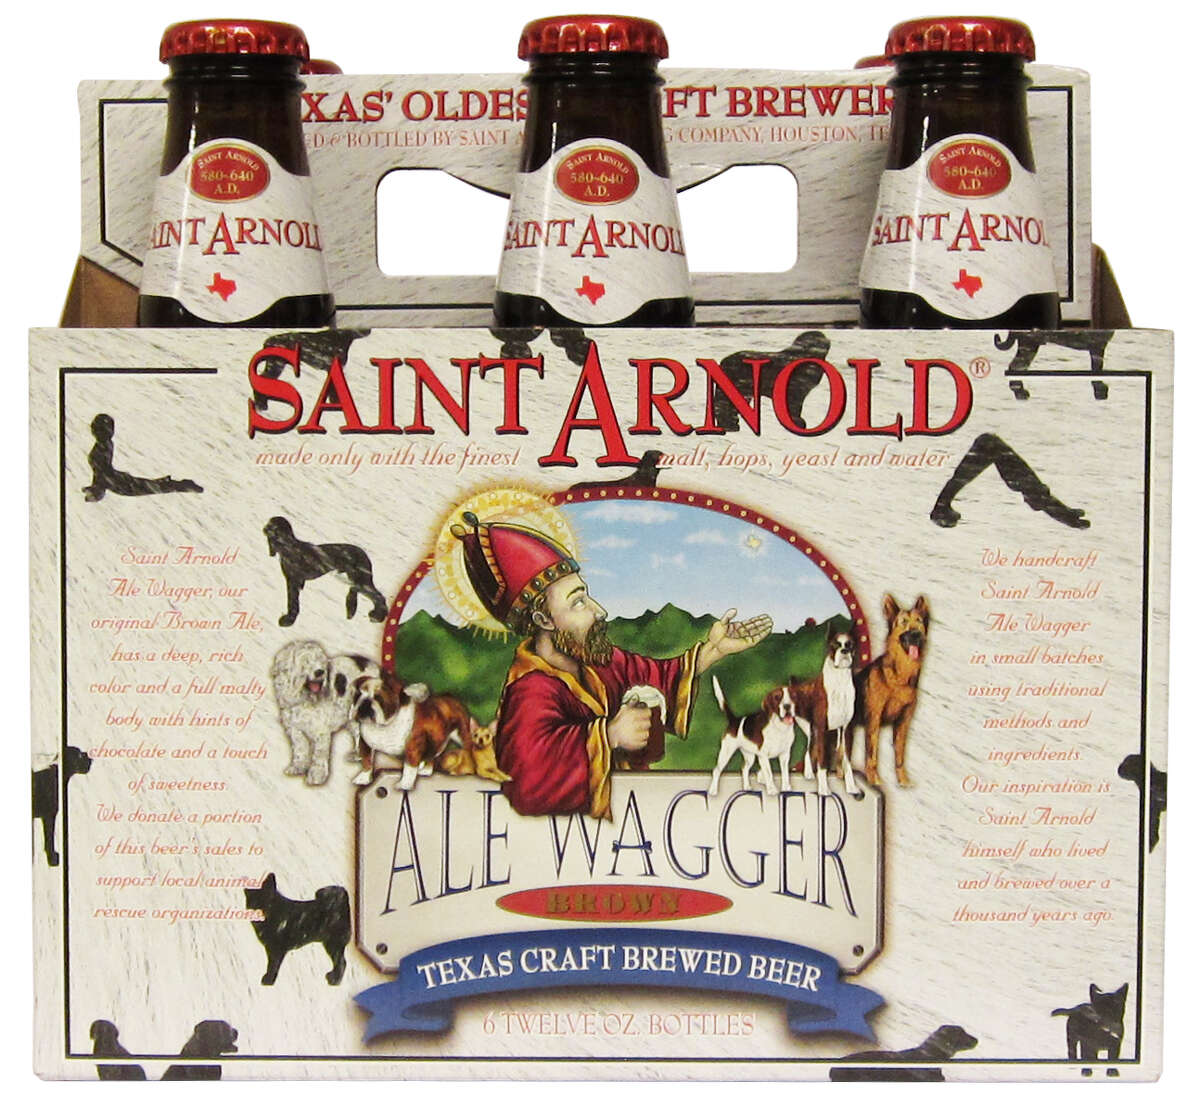 Saint Arnold is renaming its Brown Ale as Ale Wagger with images of dogs in the packaging.